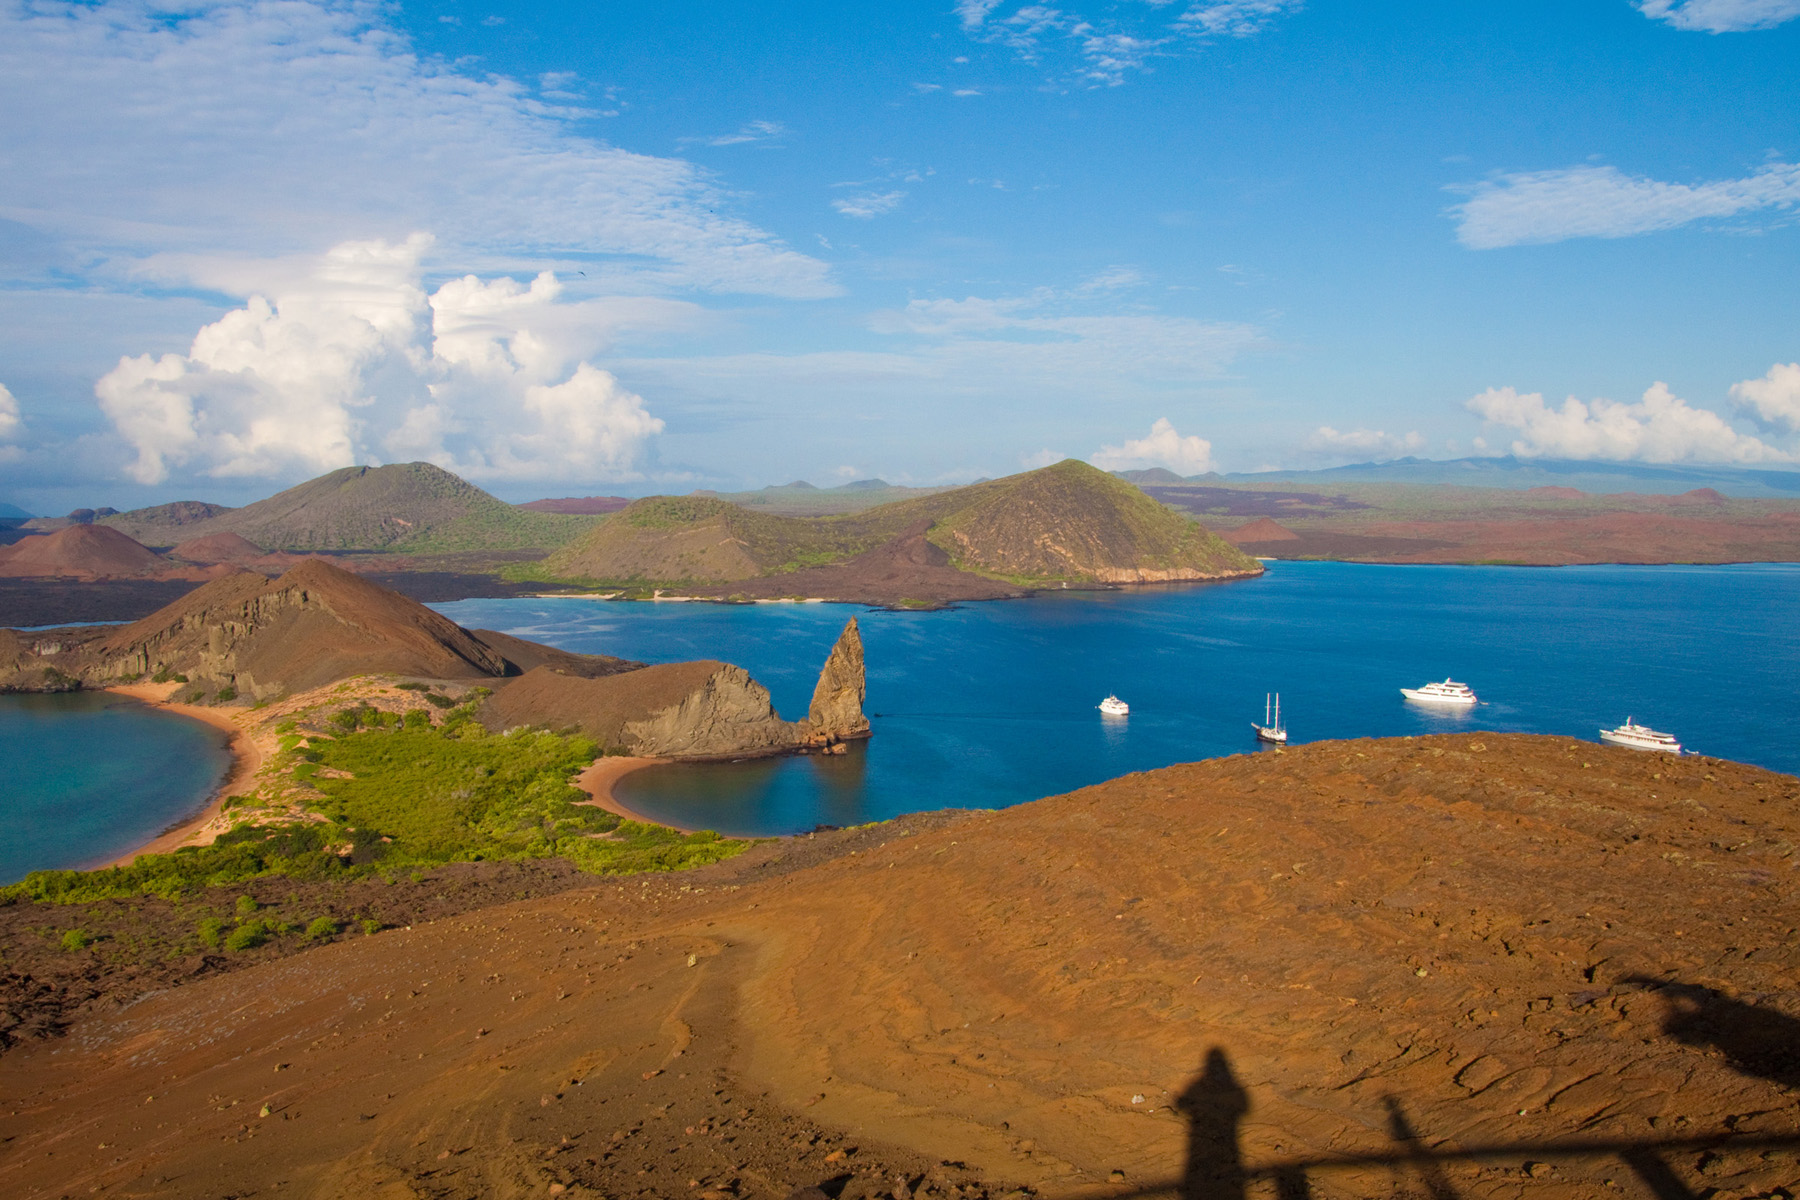 Galapagos Encounter - Archipel I (Itinerary D)